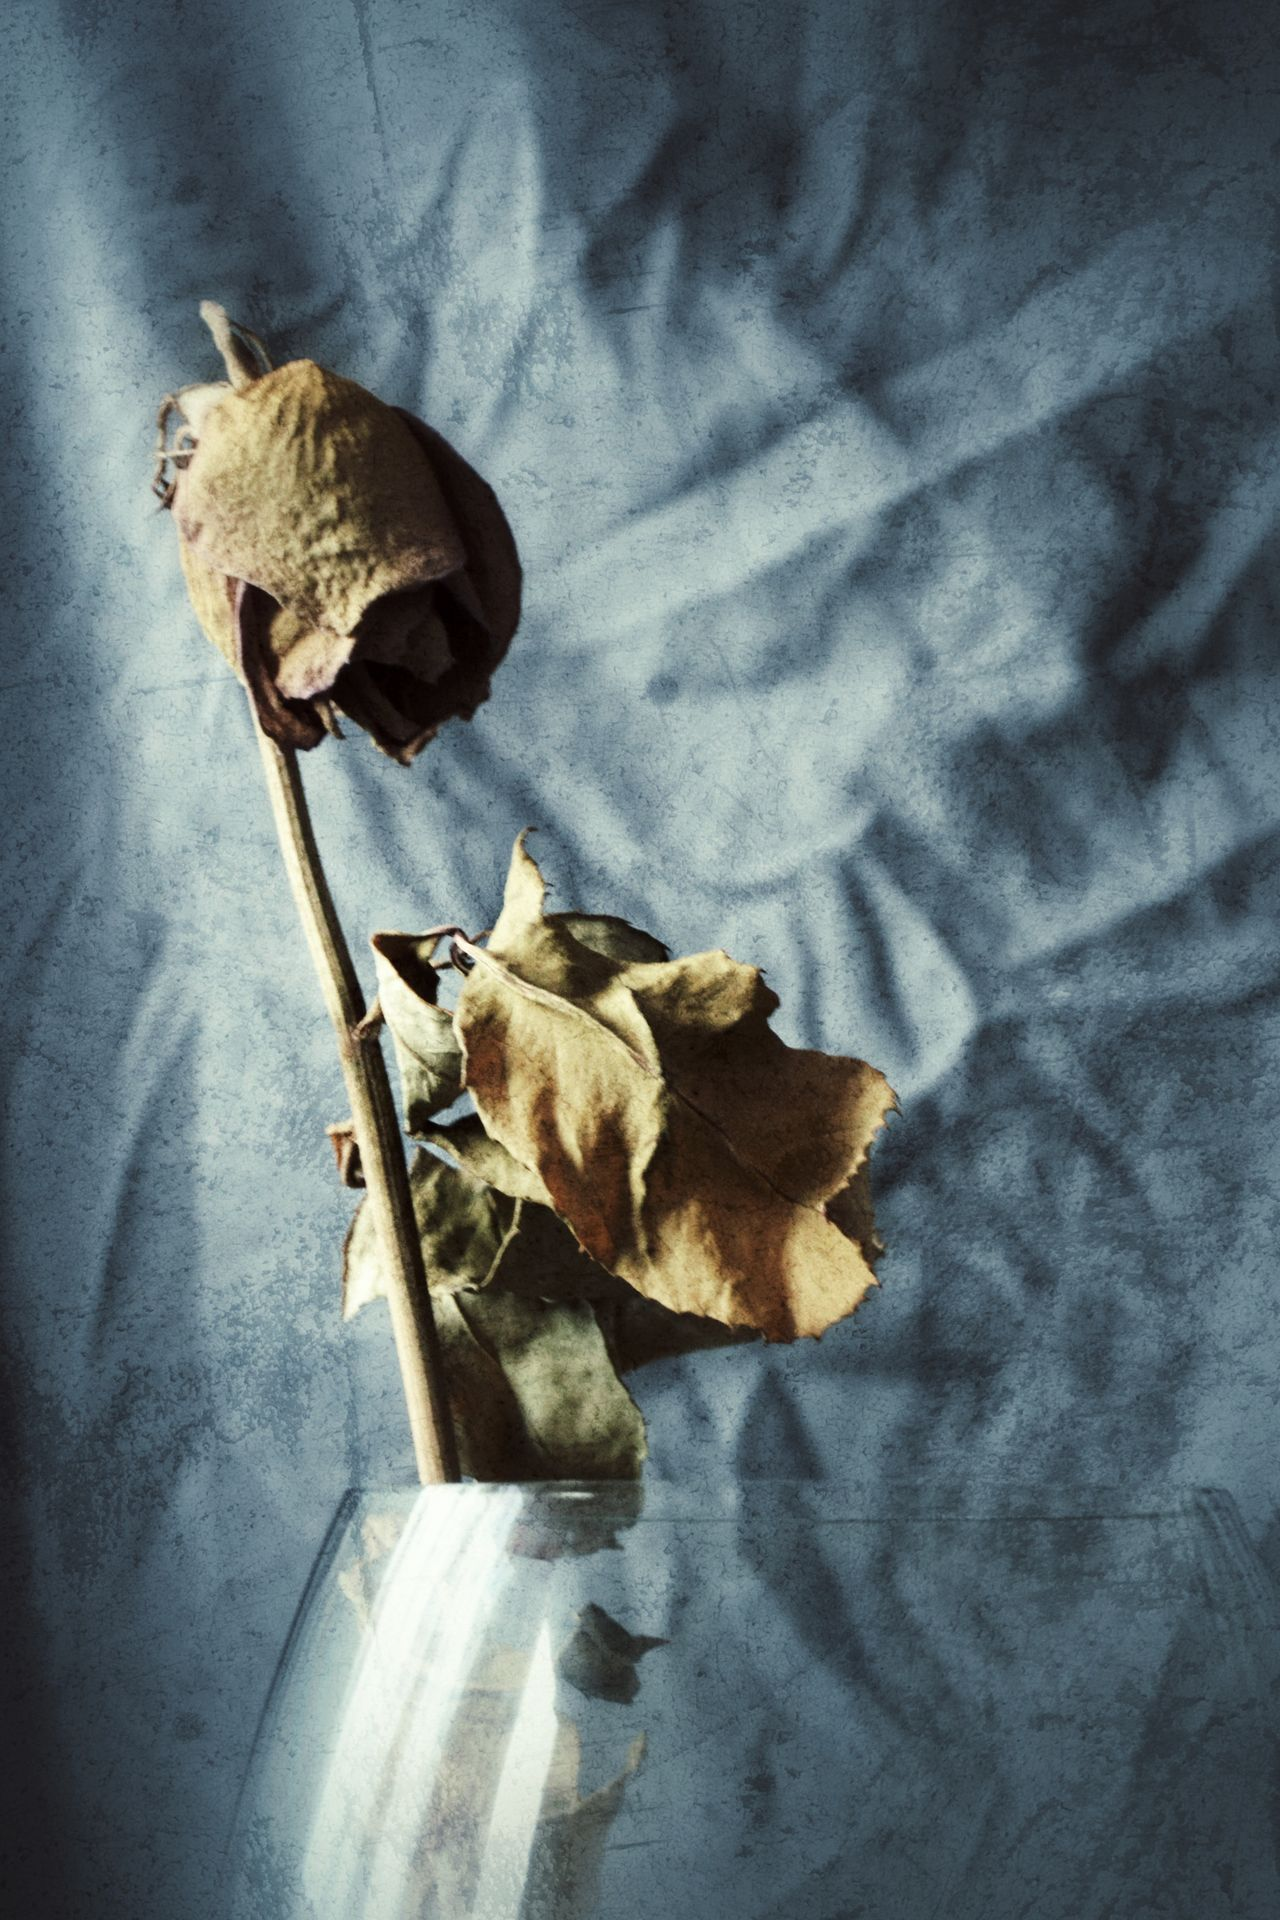 No People Textile Crumpled Paper Indoors  Leaf Close-up Day Nature Roses Dead Leaves Dead Flowers DeadRoses Flower Head Klaipeda